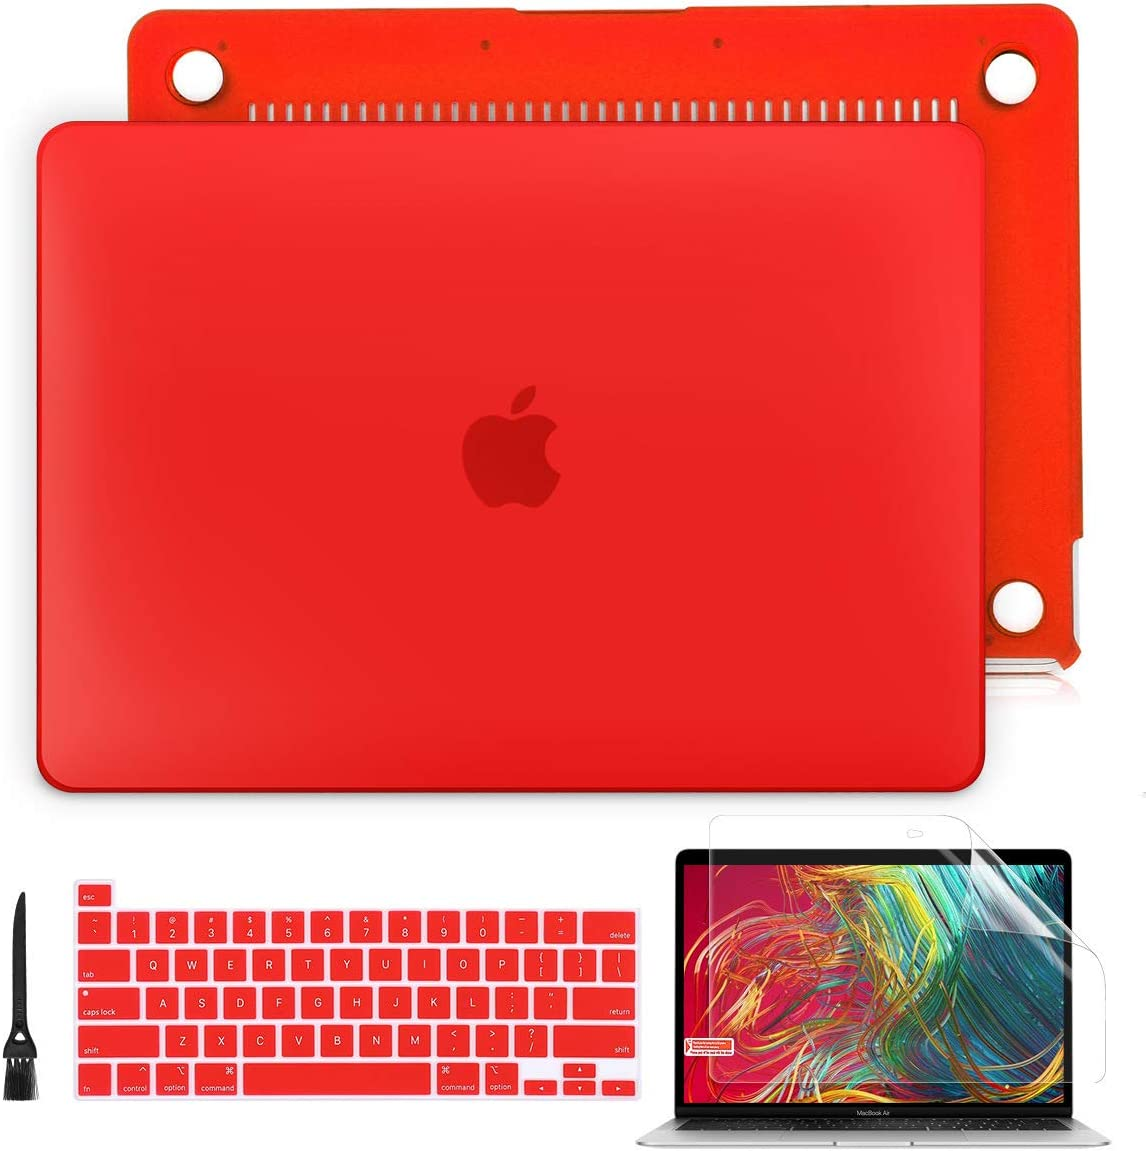 Batianda Laptop Case for MacBook Pro 13 2020 Rlease Plastice Hard Shell Cover with Keyboard Cover and Screen Protector for Mac Pro 13'' Touch Bar Model A2289/A2251,Matte Red